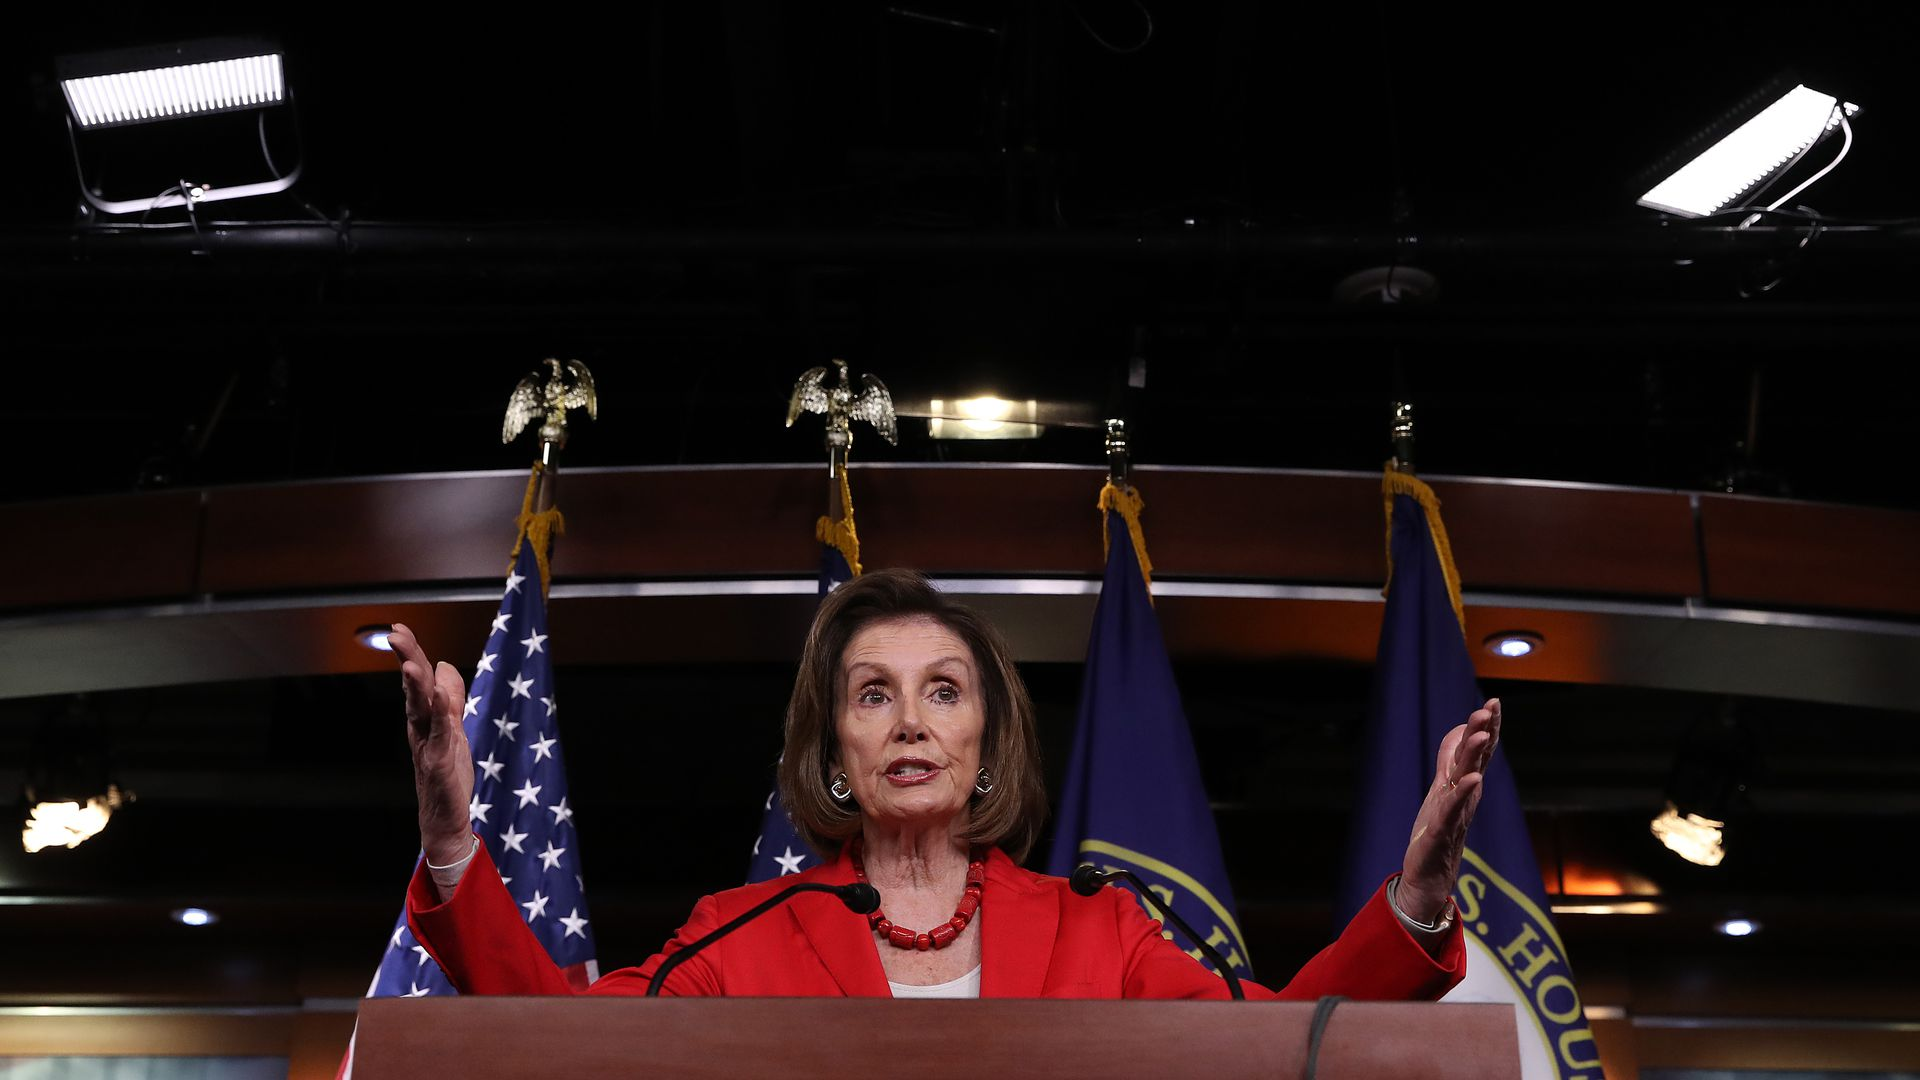 In this image, Nancy Pelosi stands behind a podium and speaks.